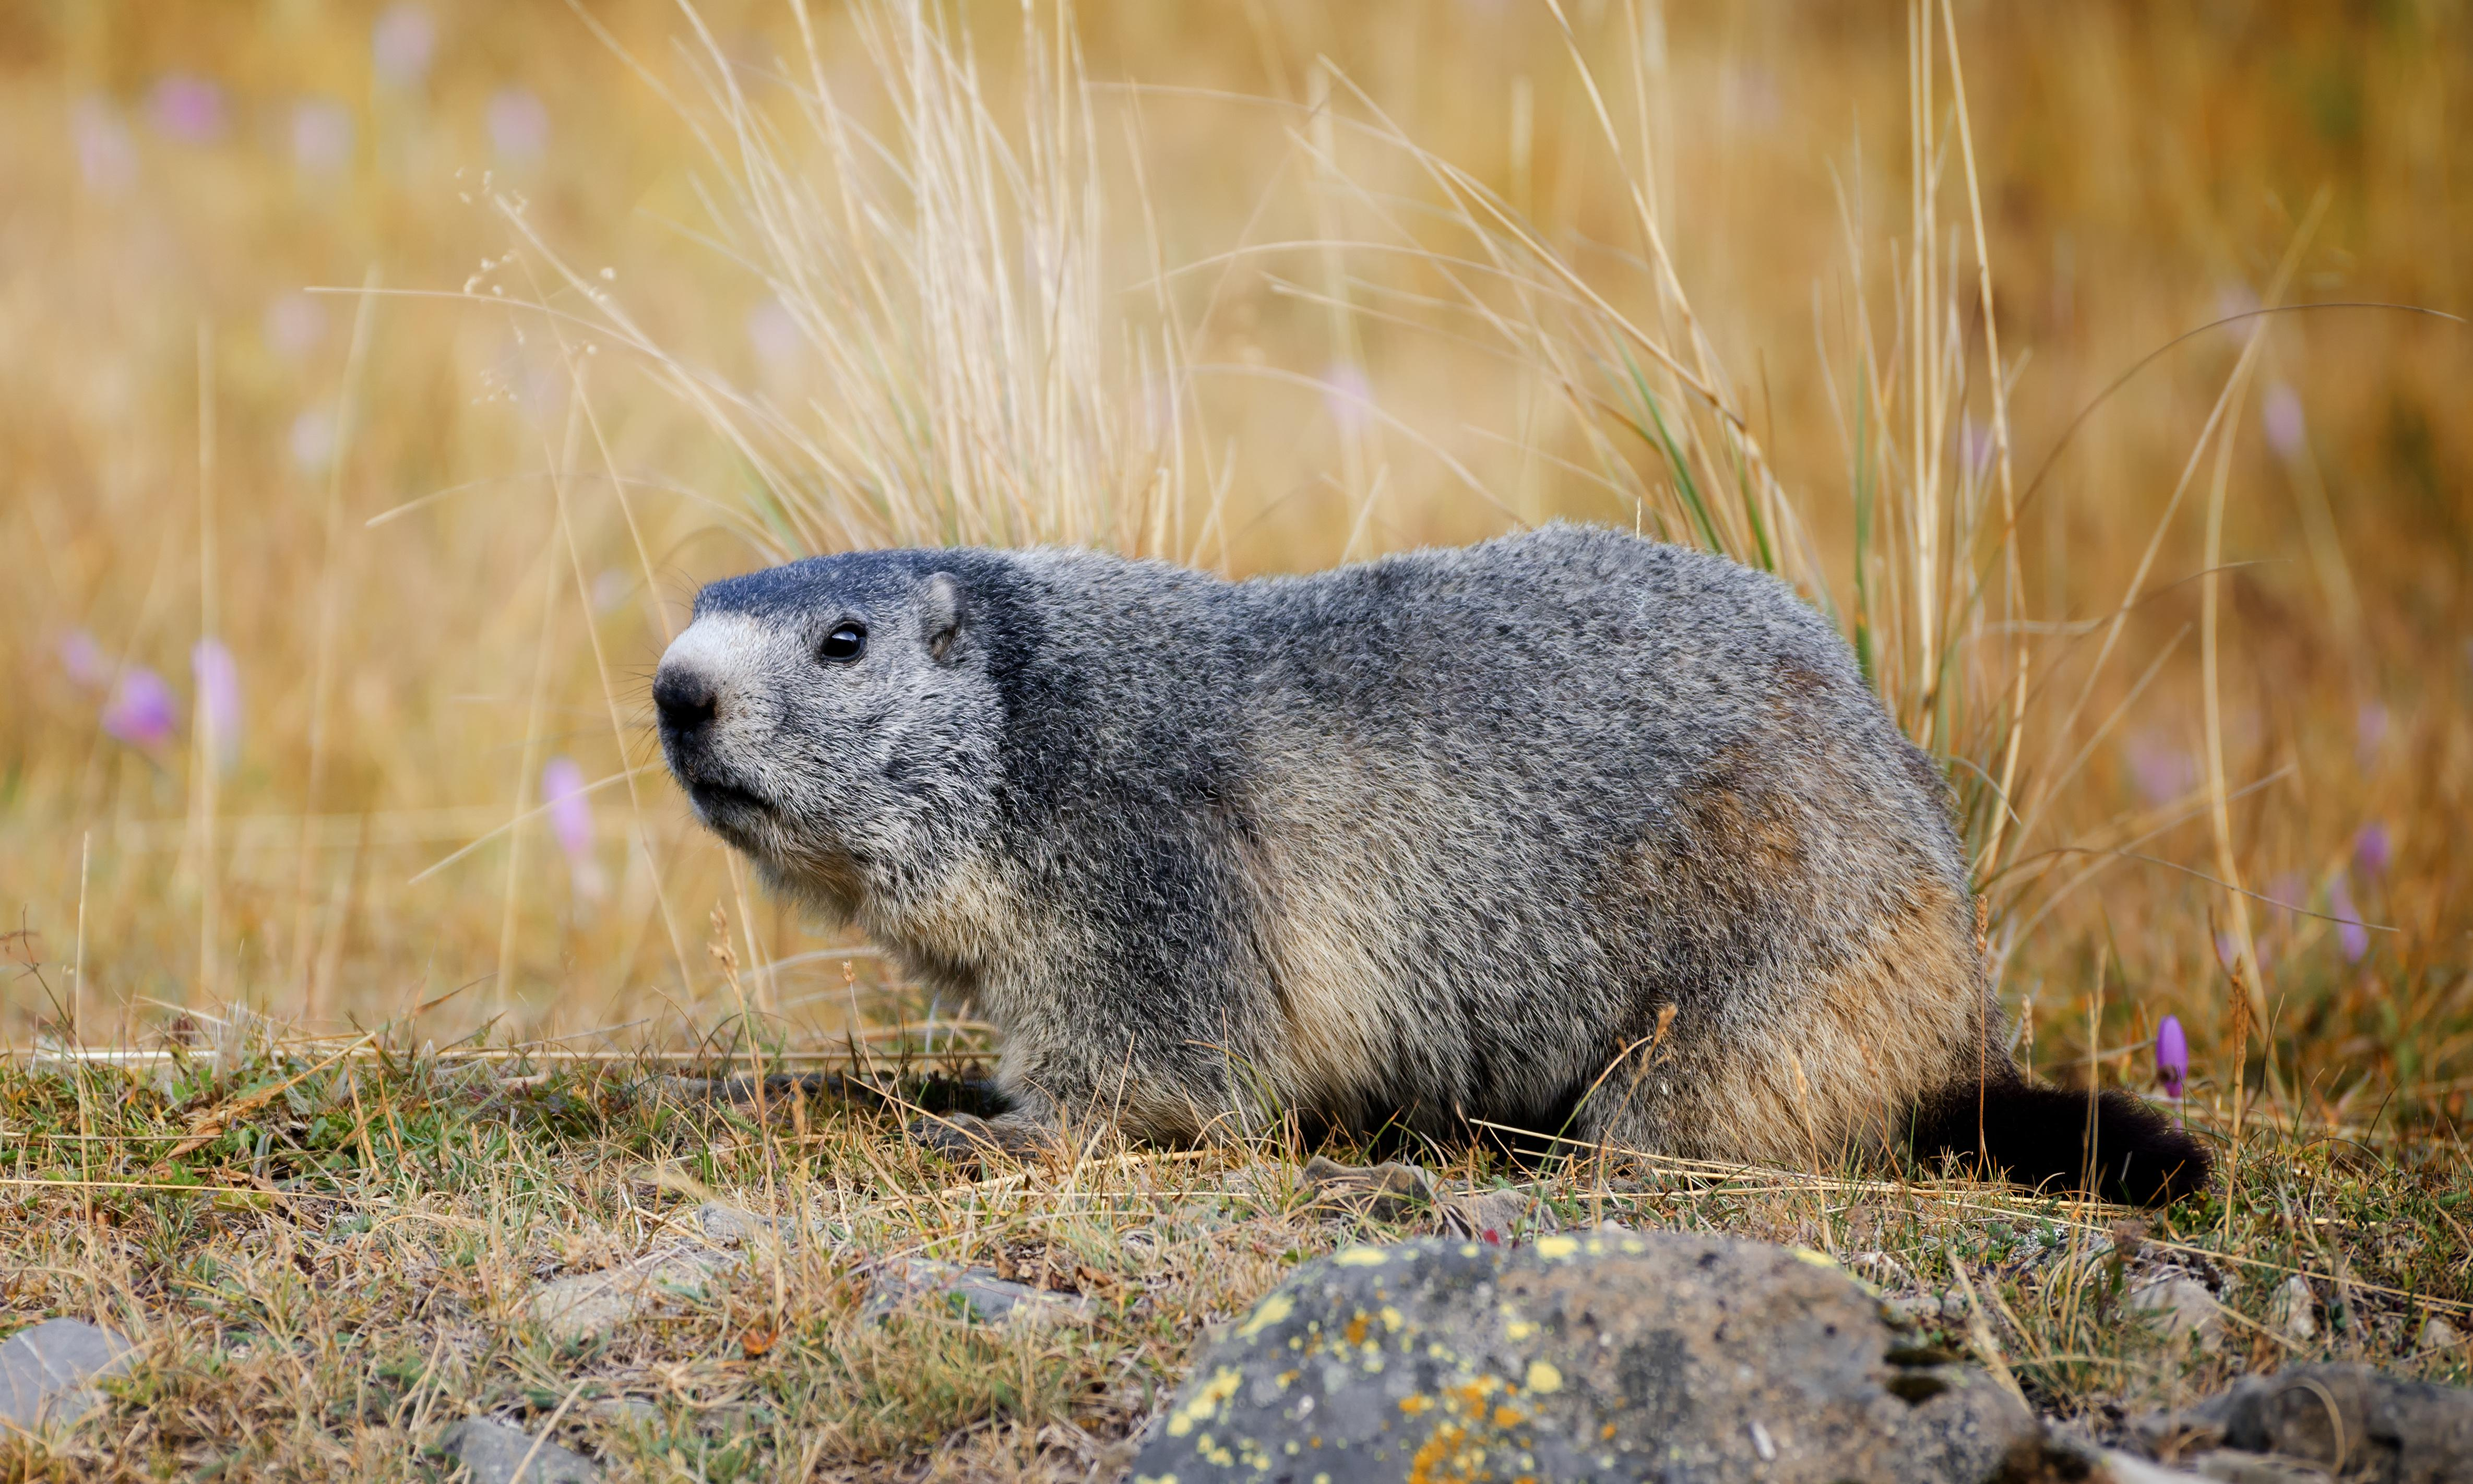 Mongolian couple die of bubonic plague after eating marmot